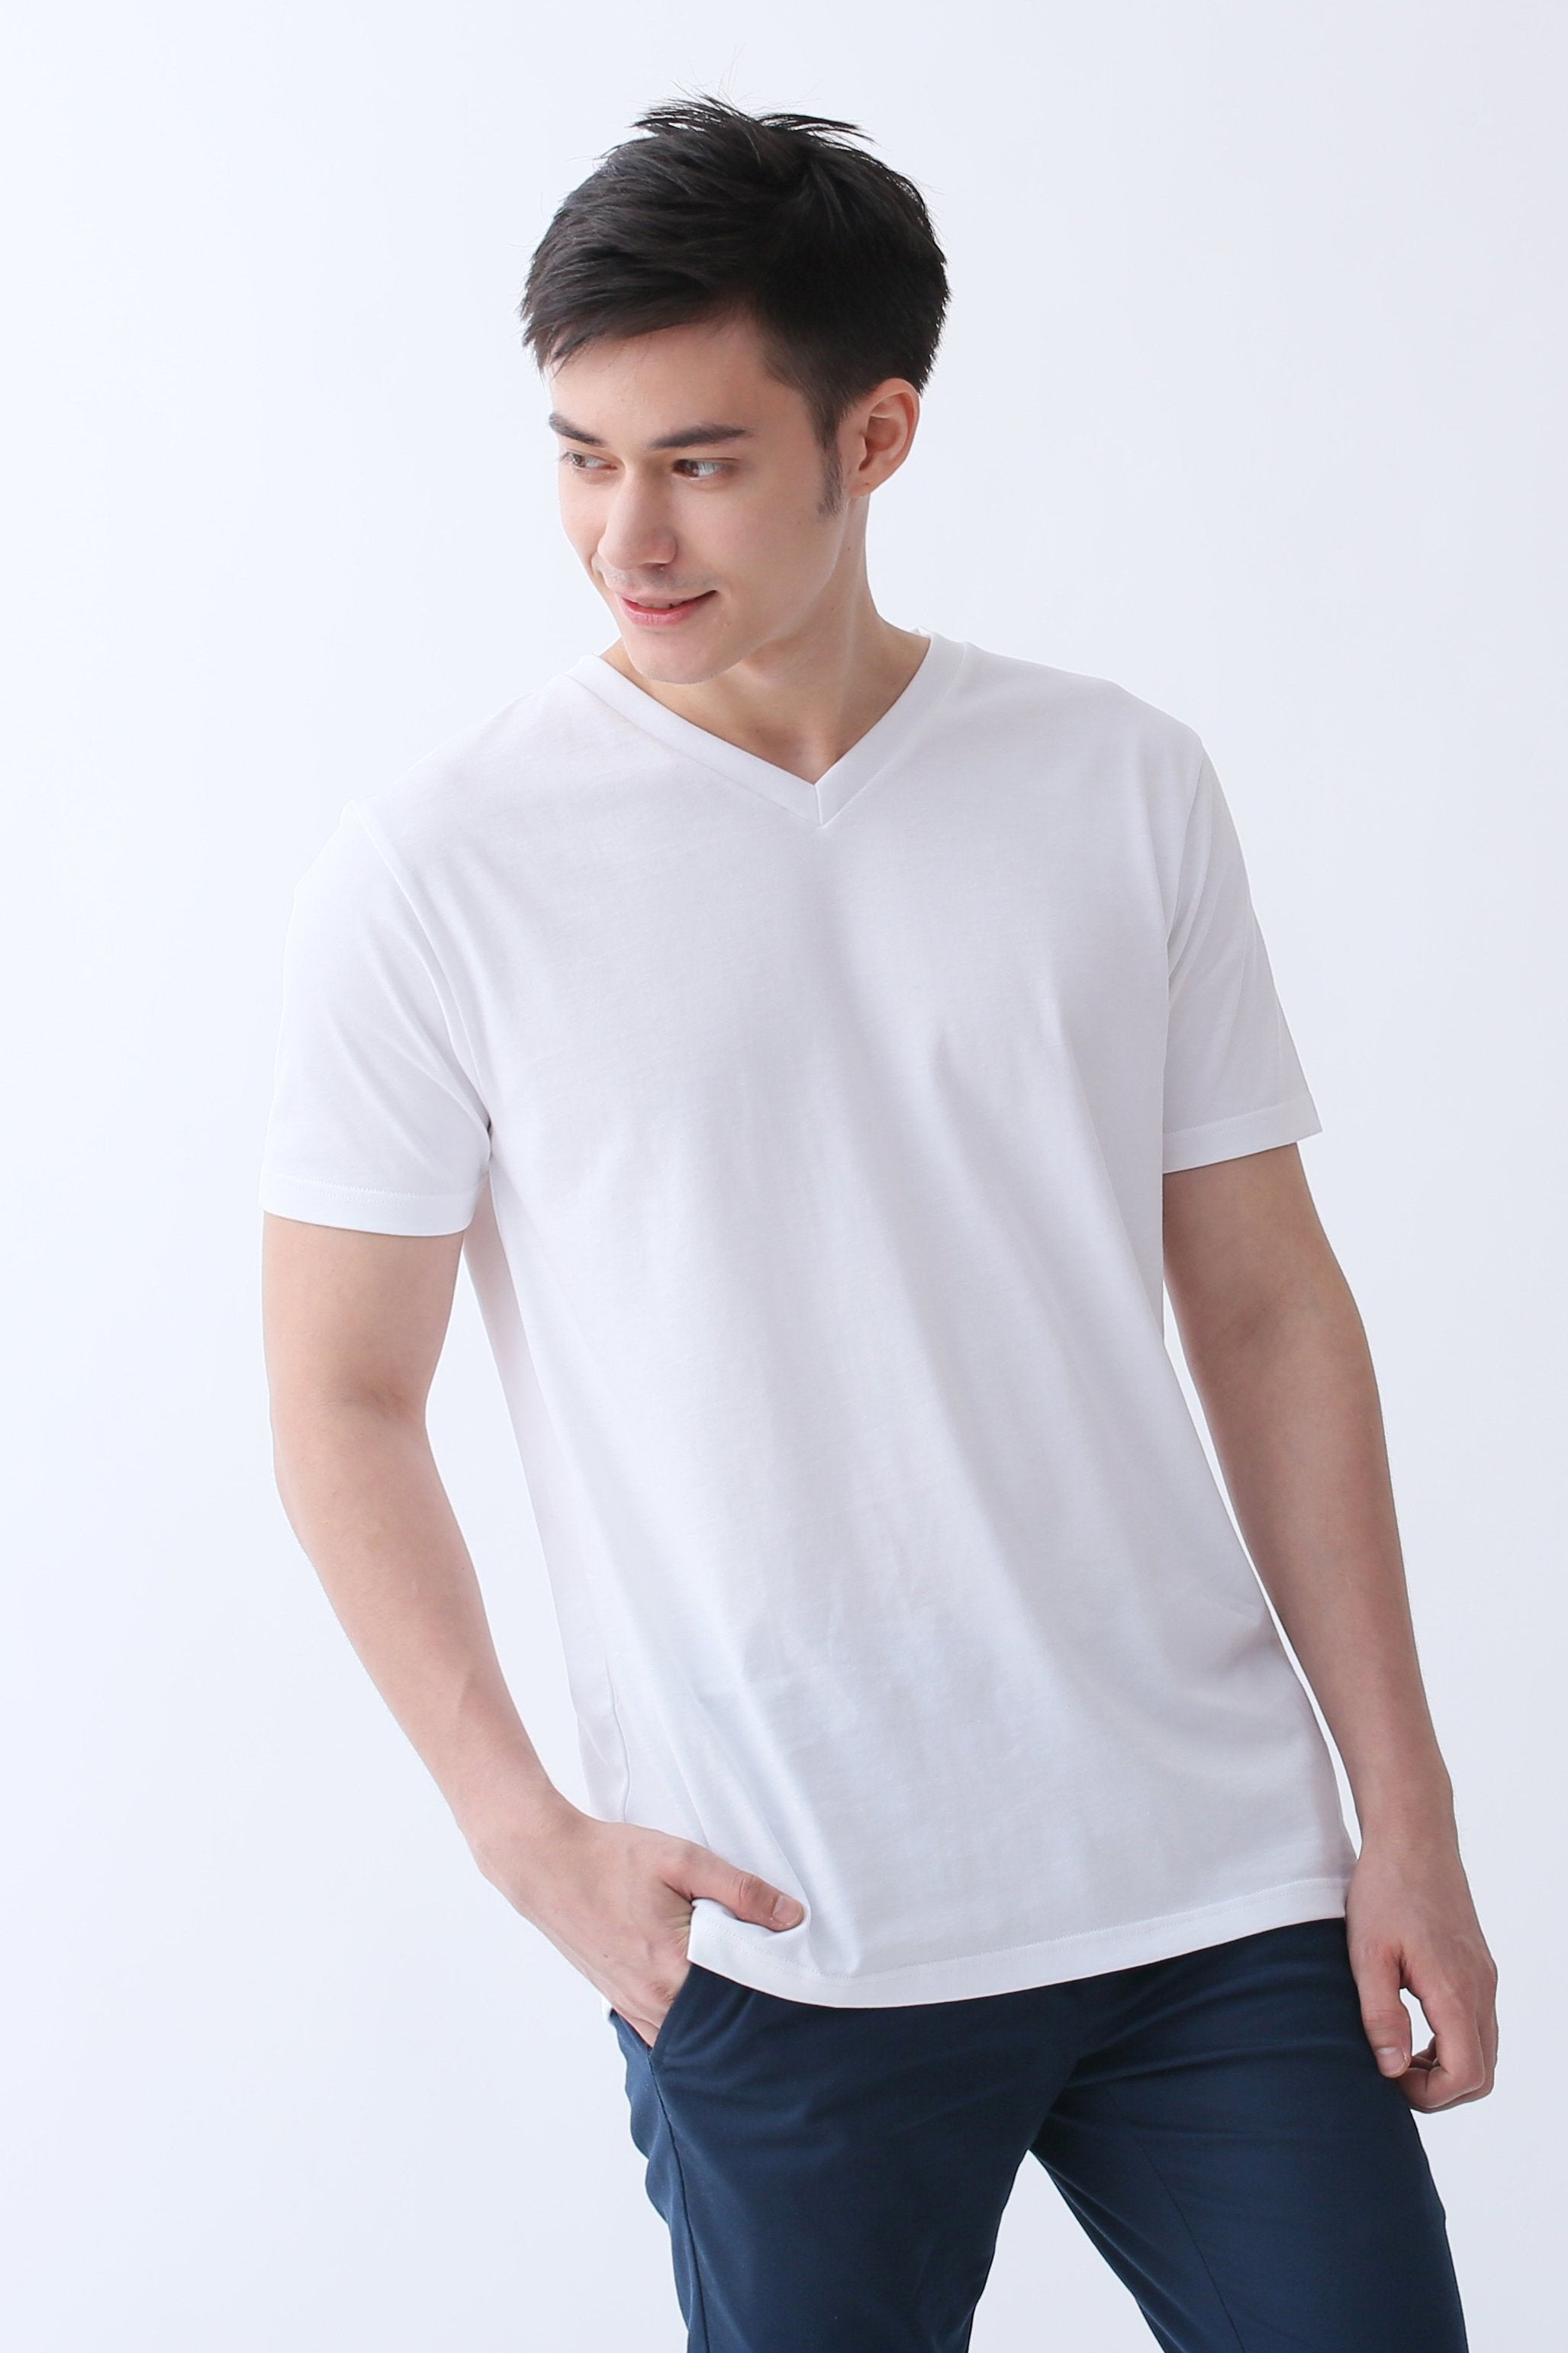 1c4c39a30a Supima Cotton V-Neck T-shirt | Signature White | For Men - Buttonwell